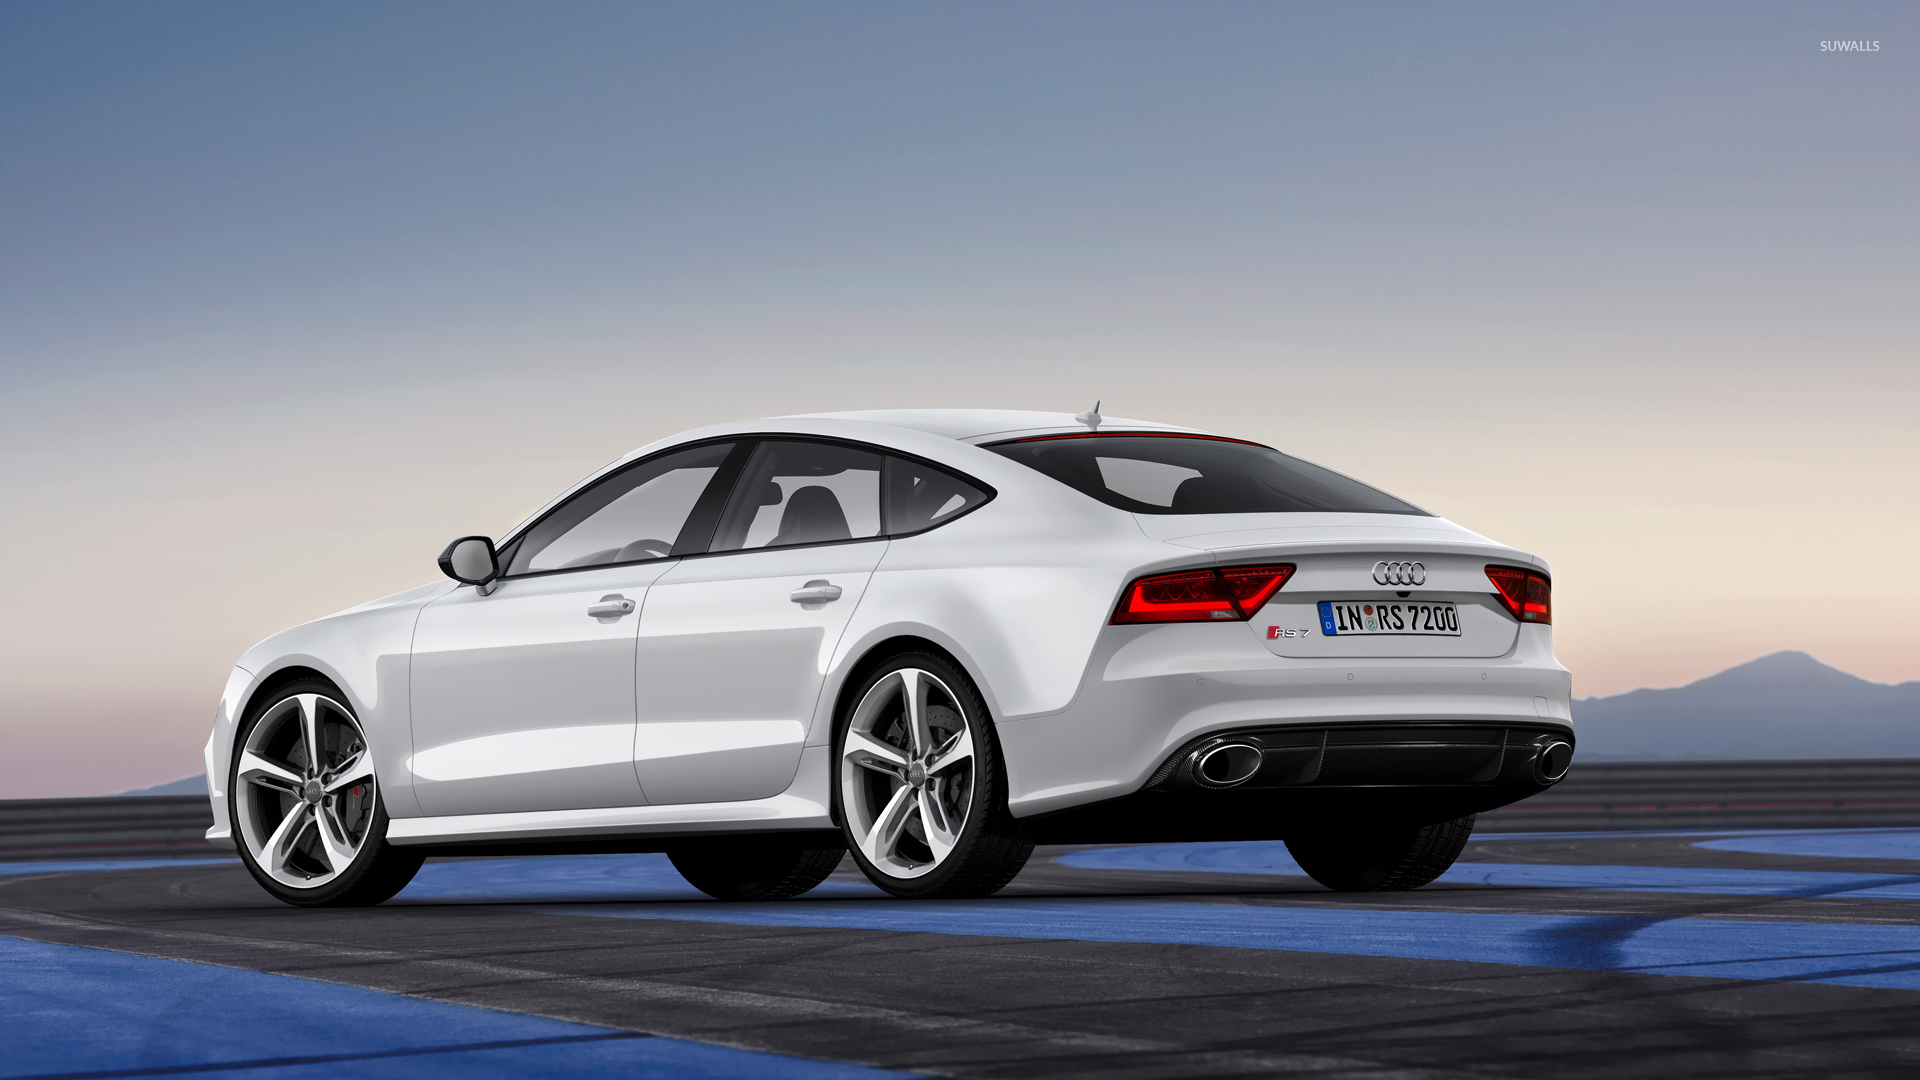 2014 White Audi RS7 Sportback wallpaper - Car wallpapers ...